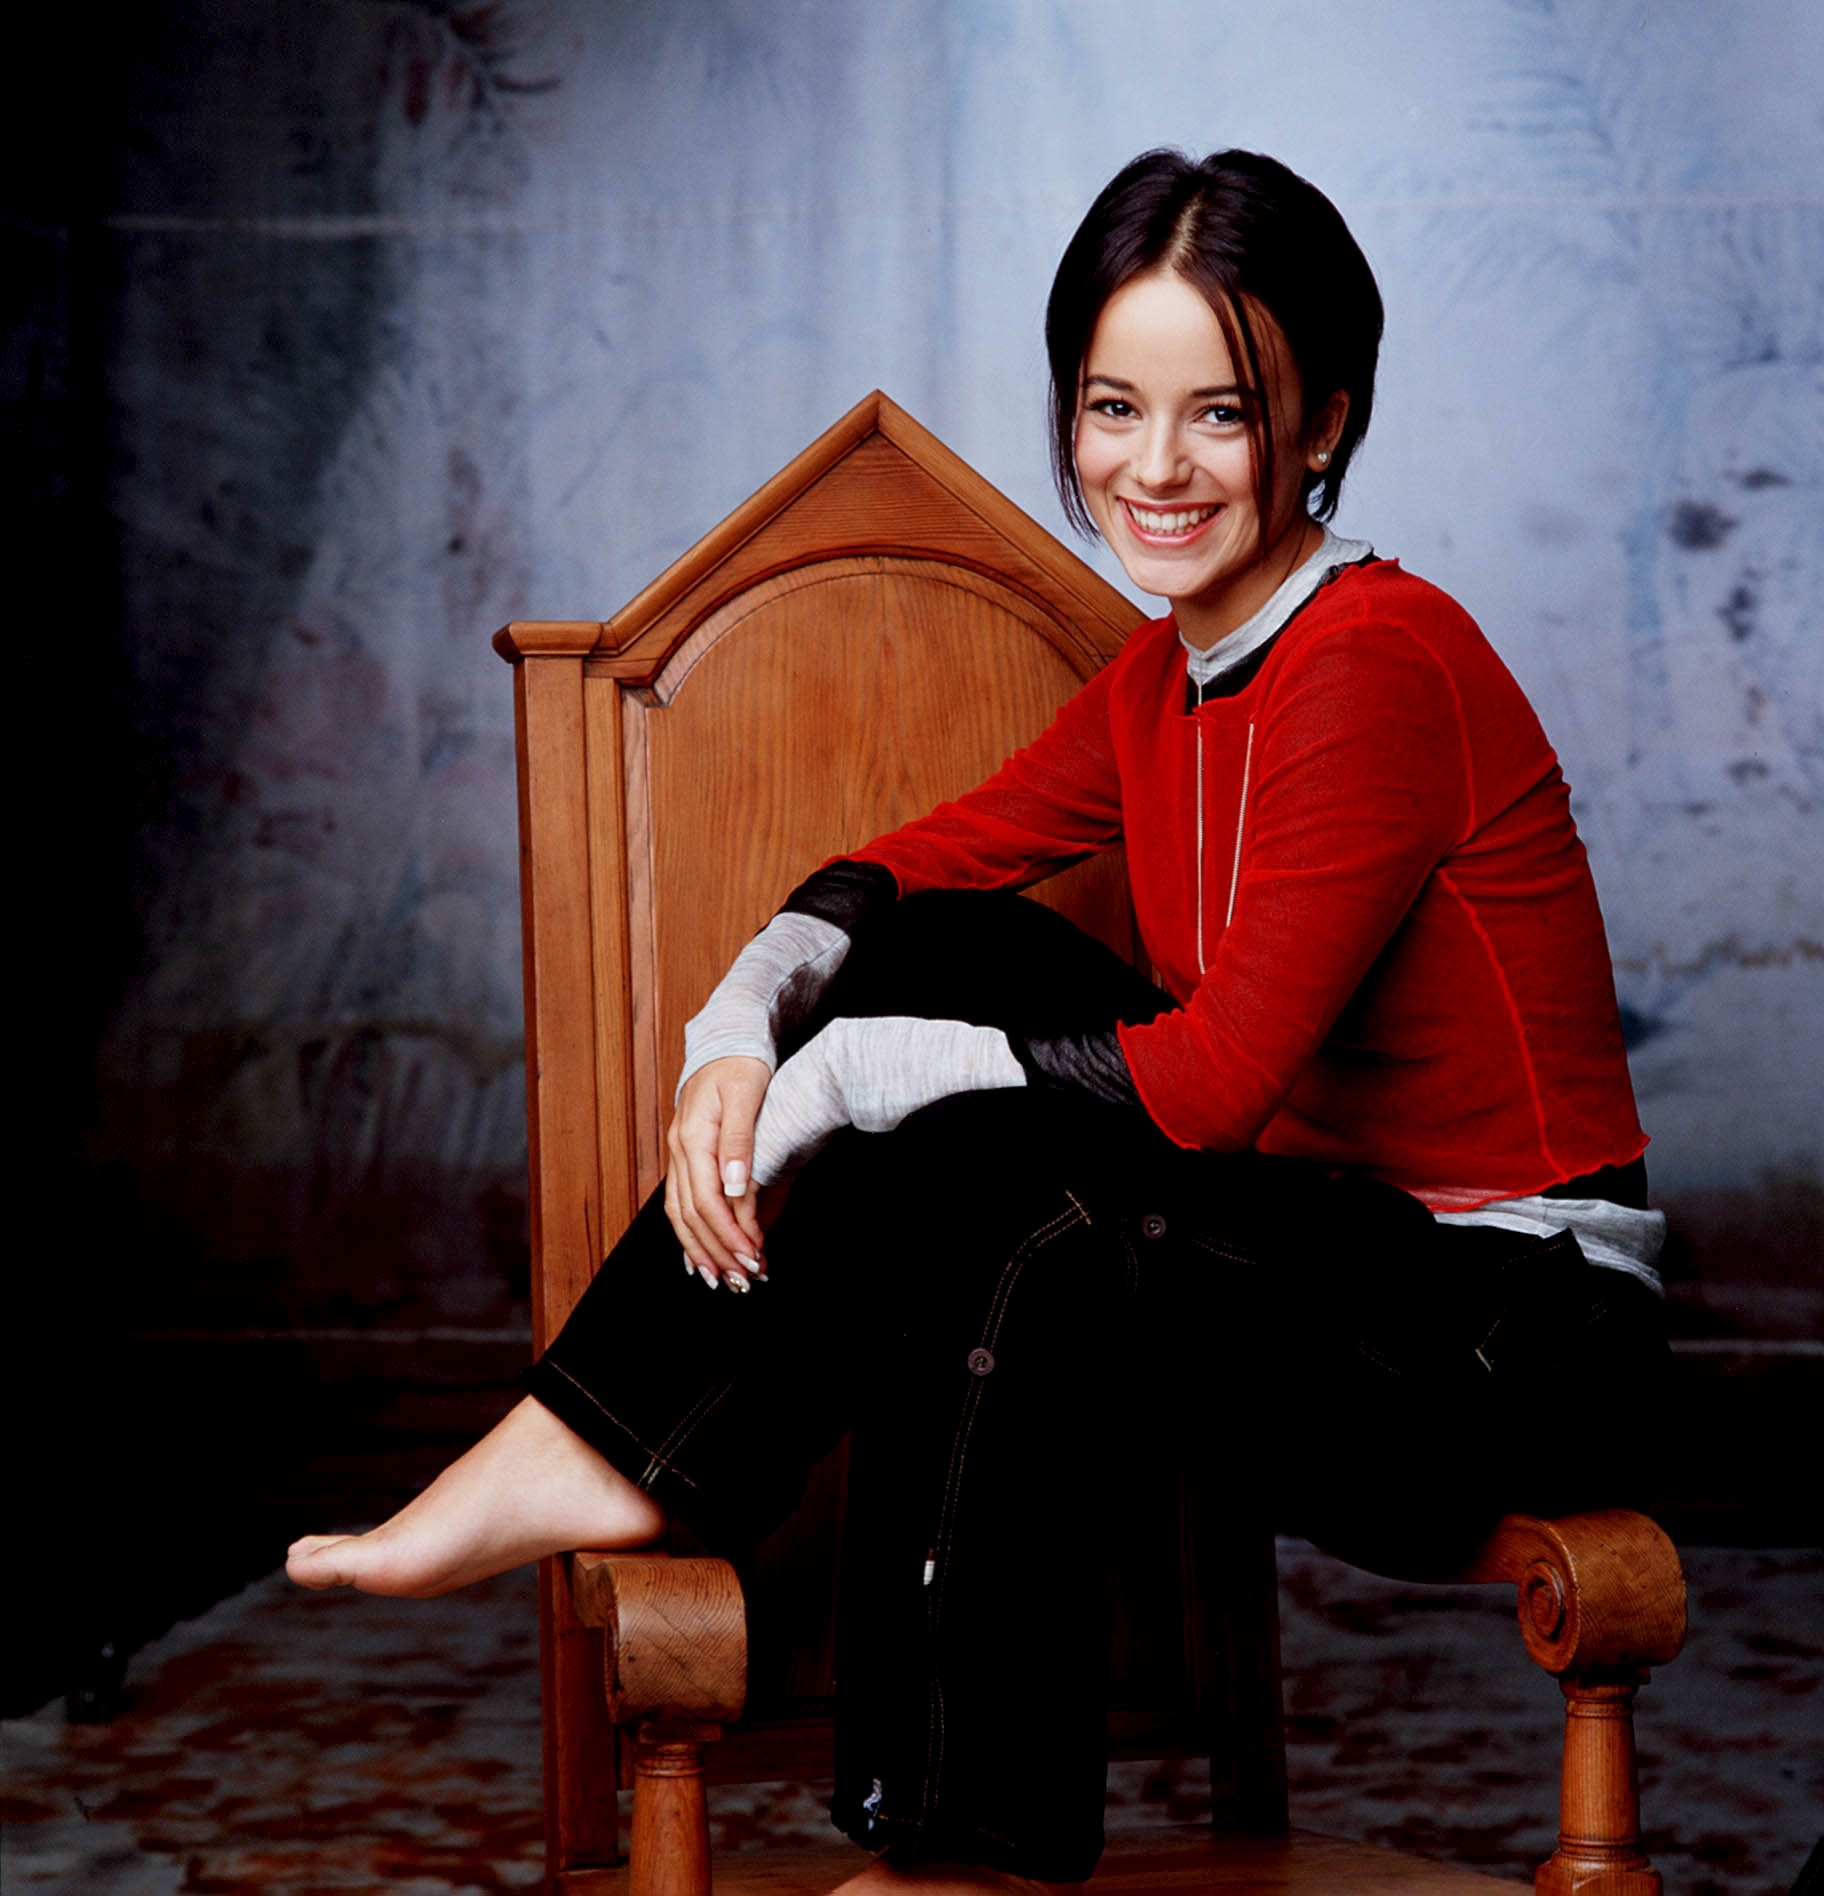 photo Alizée telechargement gratuit